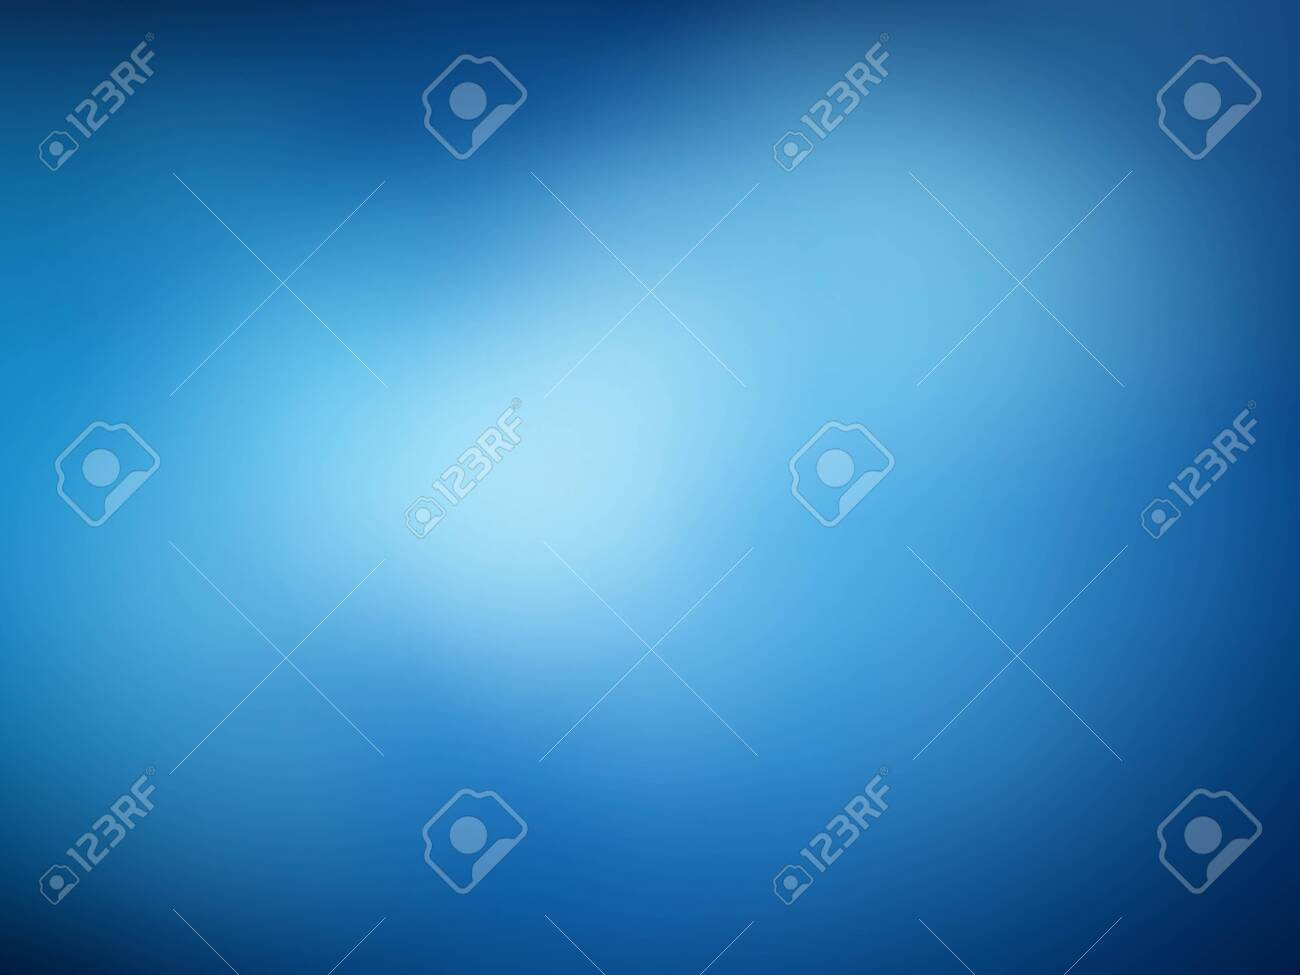 Blue blur abstract template. Cold sky empty background. Neutral blurred template. - 143697812